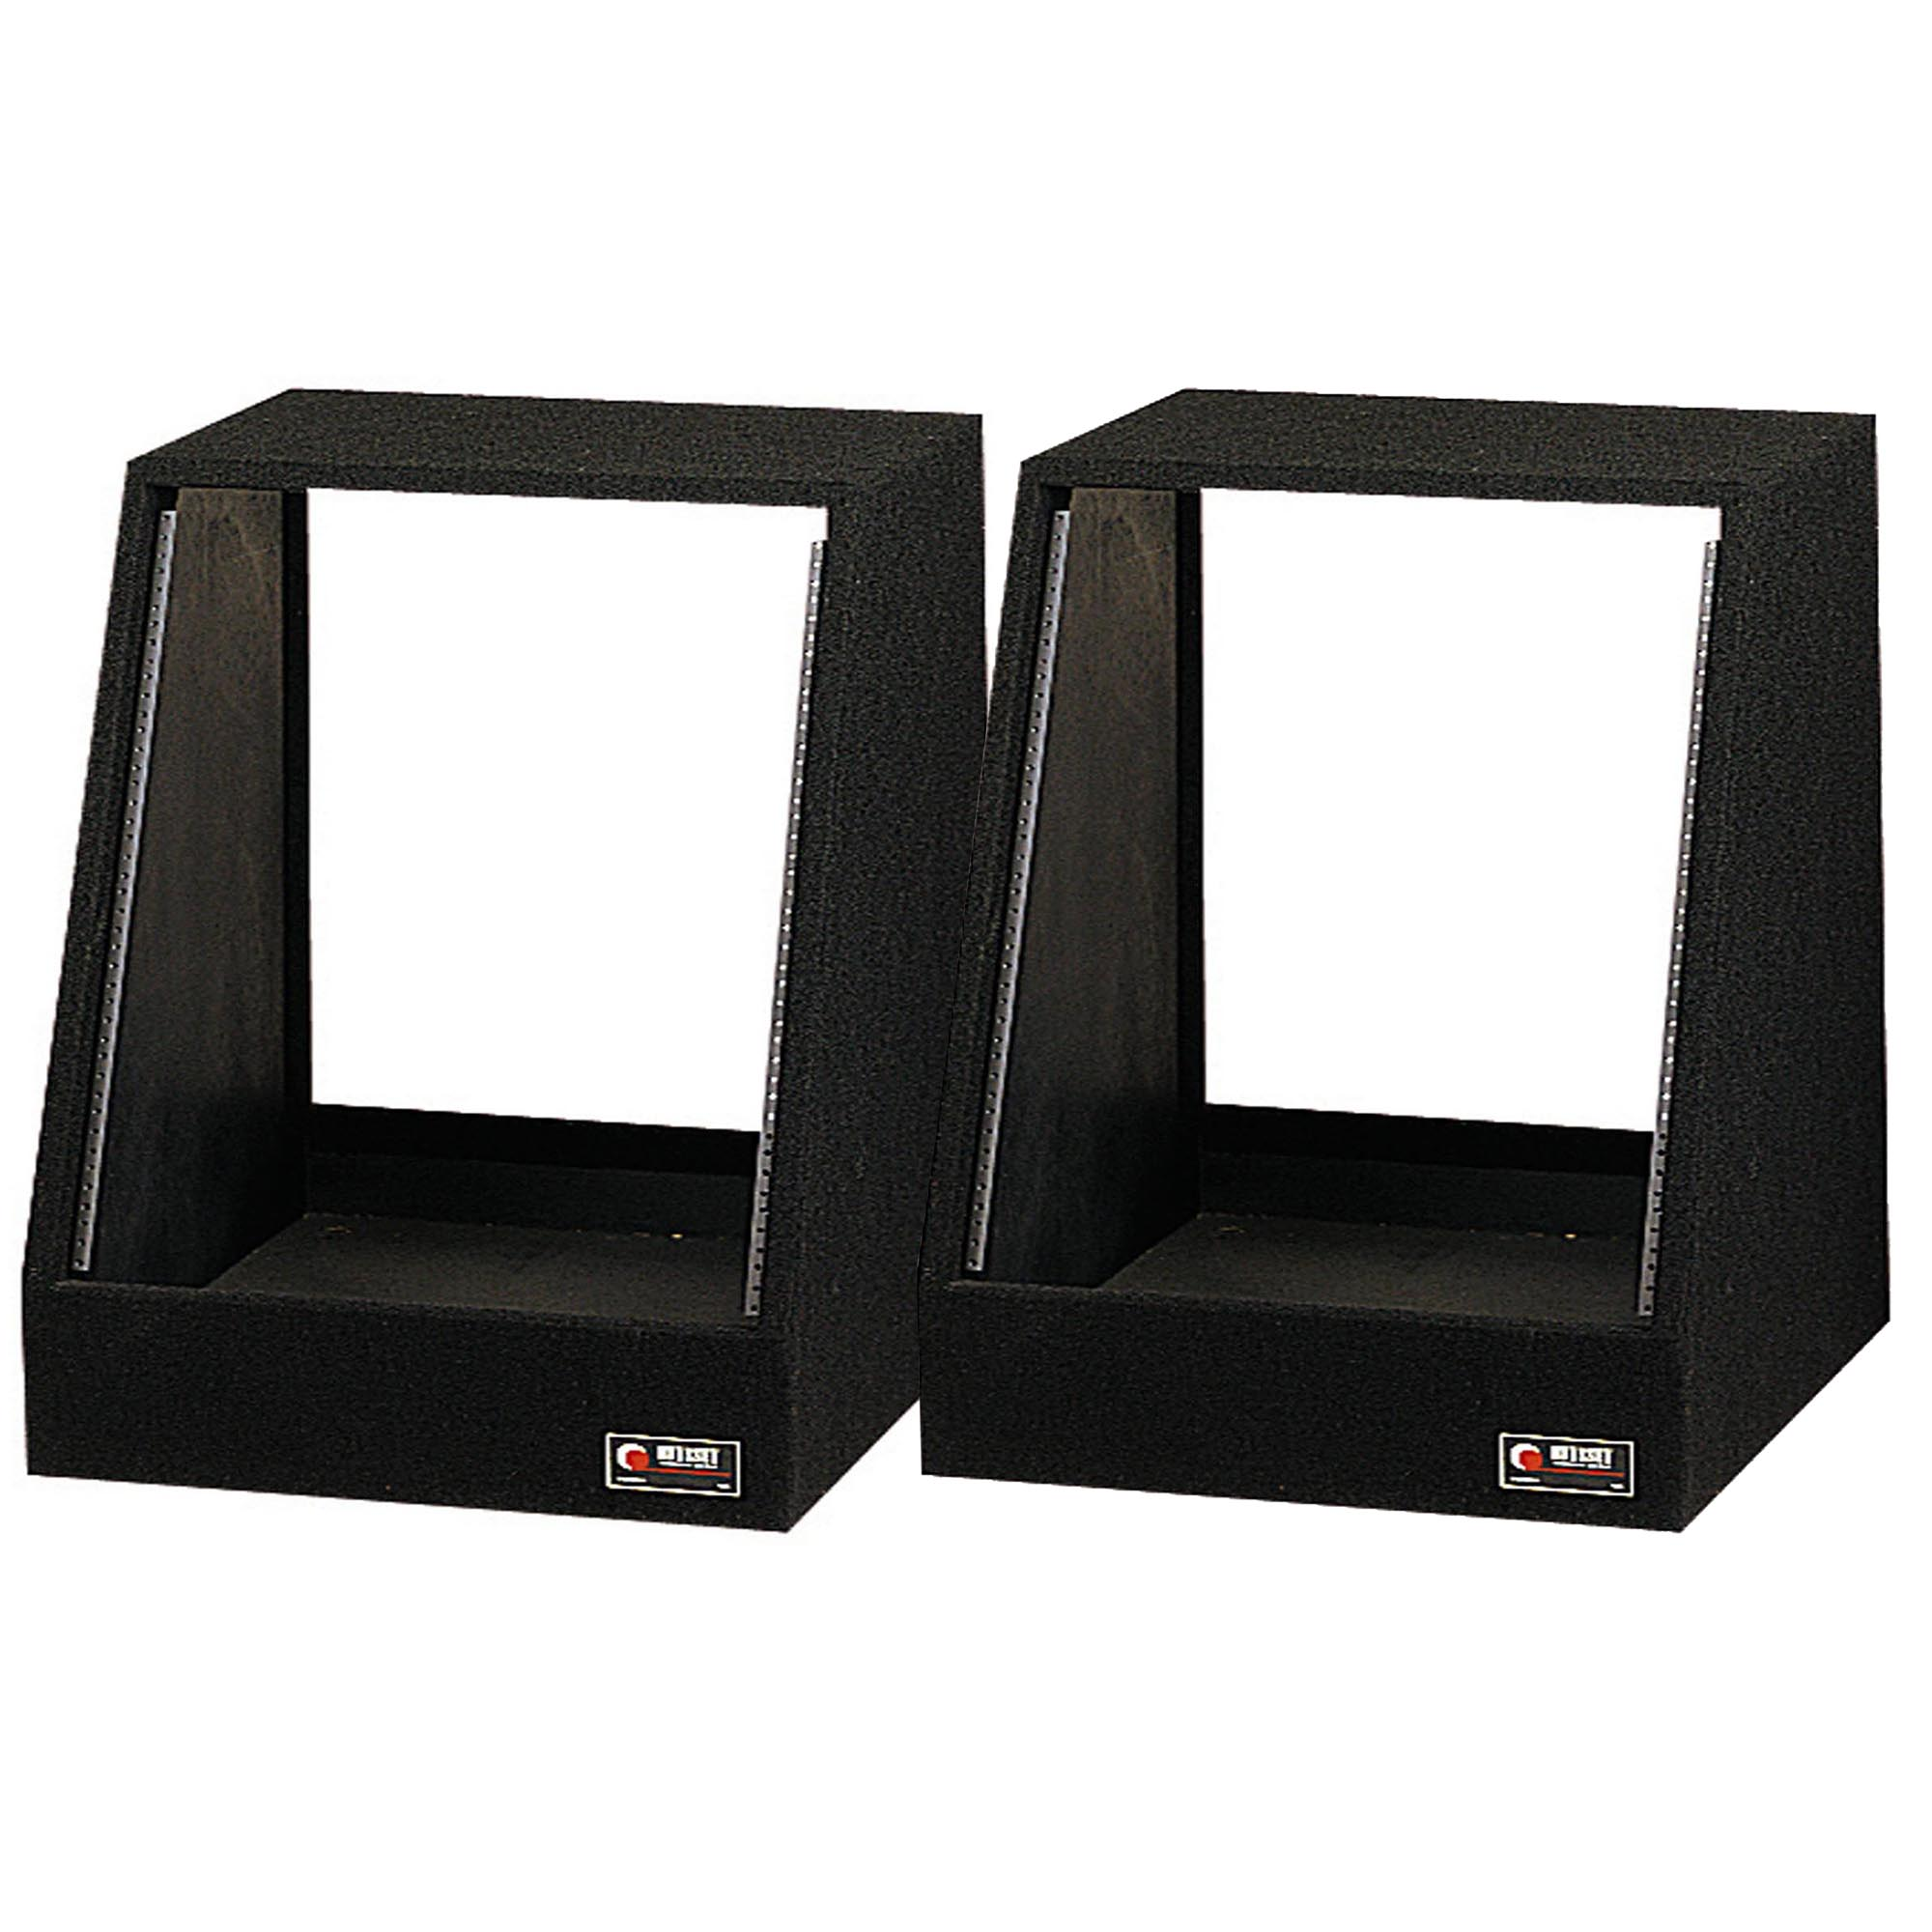 Odyssey 12 Spaces 12U Angled Face Open Back Carpeted Studio Rack (2 Pack) CRS12 by Odyssey Case